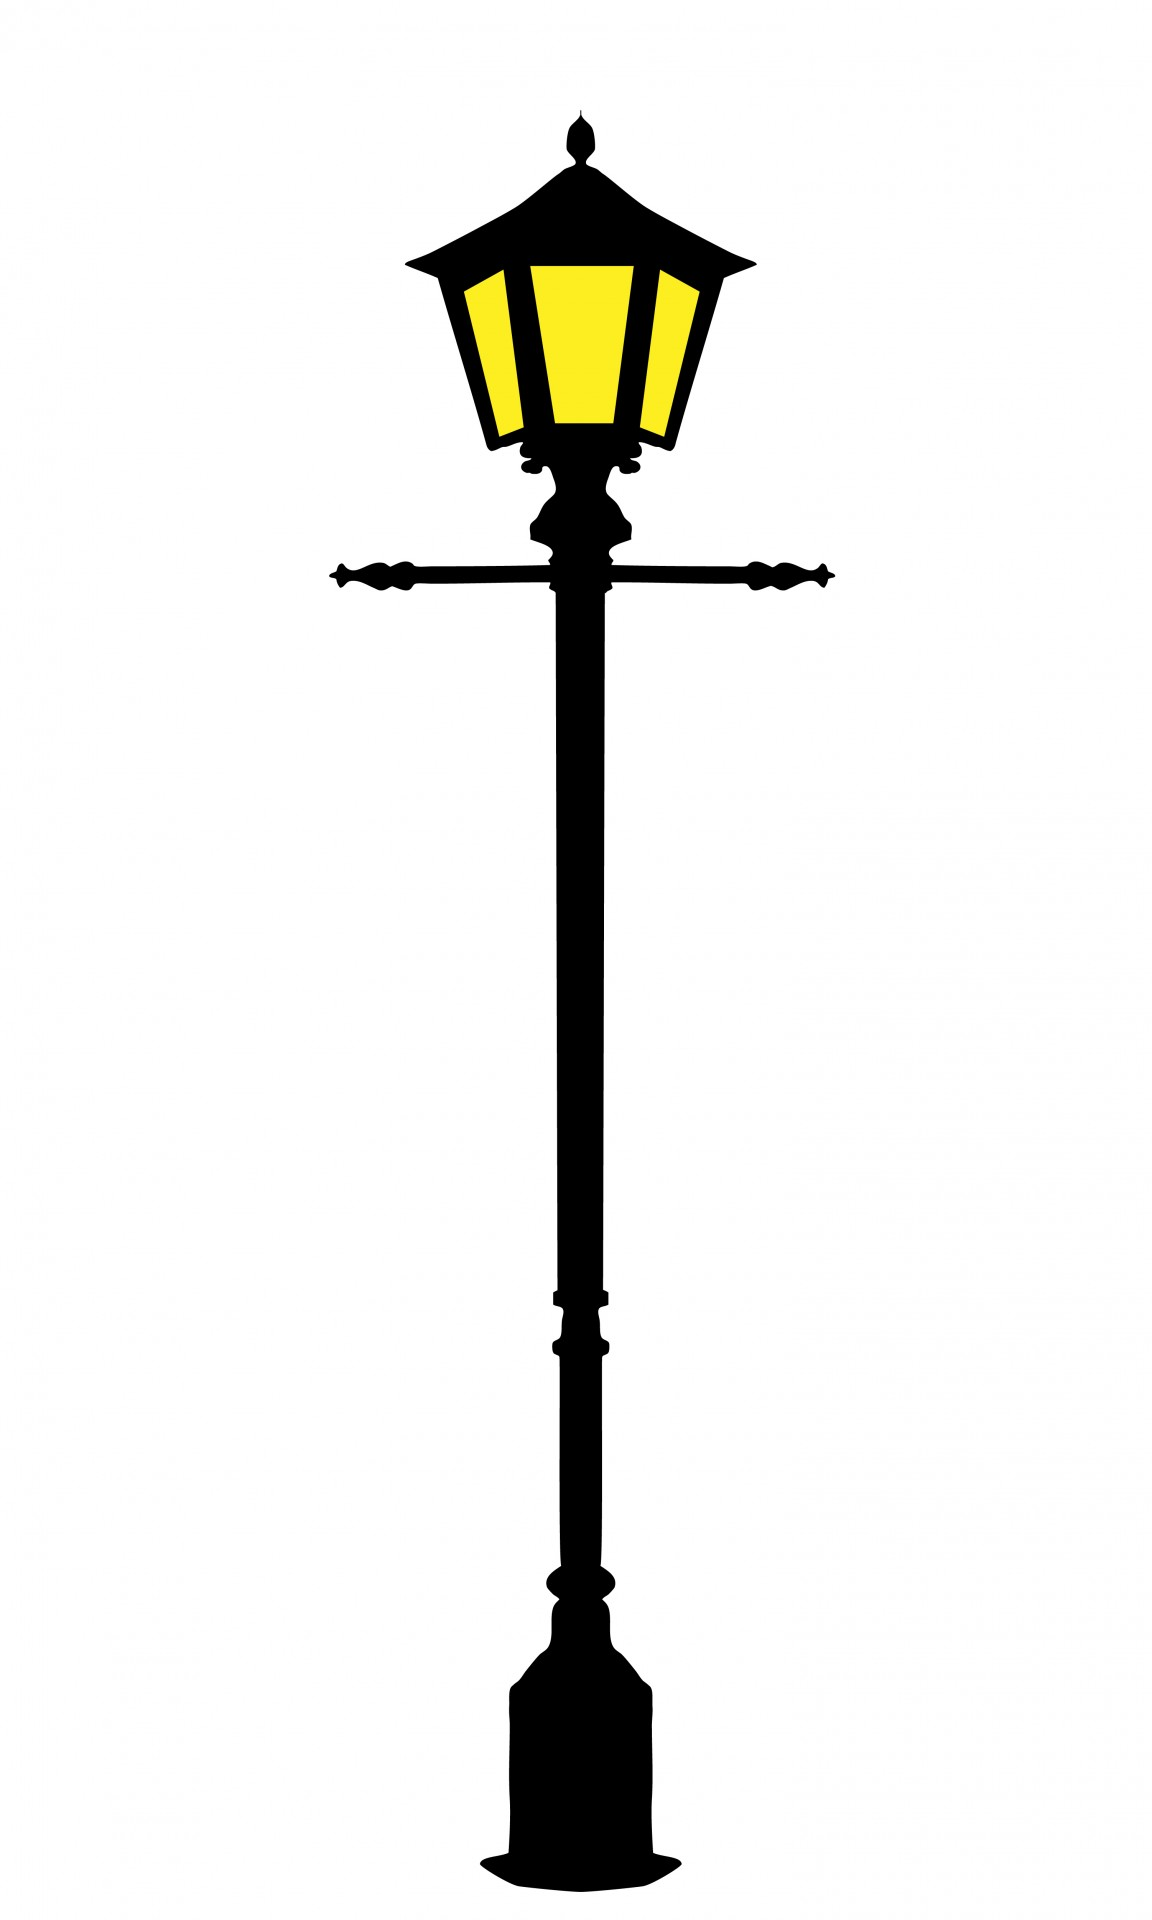 1152x1920 Street Light Clipart Silhouette Many Interesting Cliparts